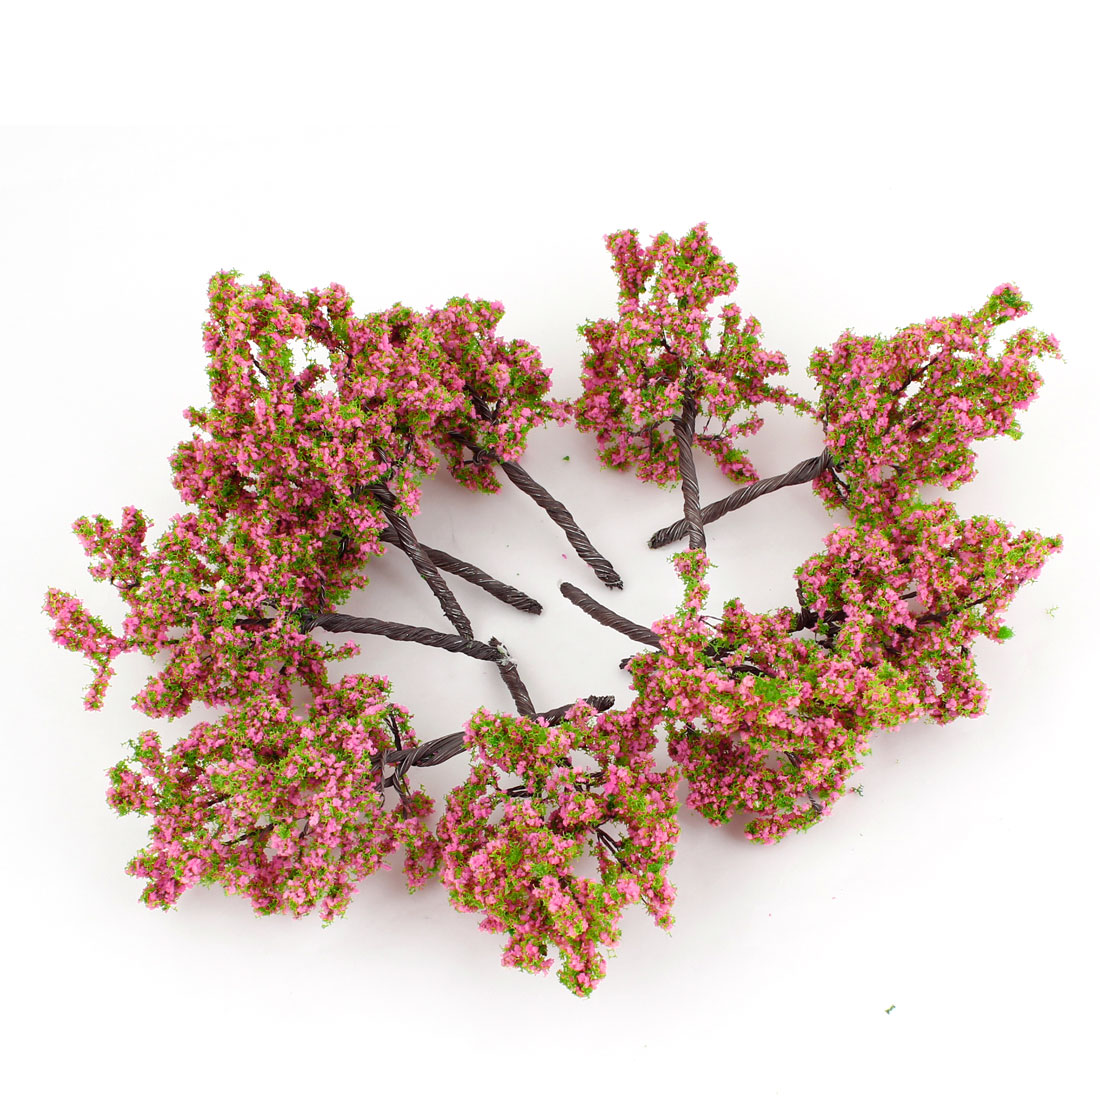 10 Pcs Pink Green Scenery Model Flower Tree 11cm High Scale 1:75-100